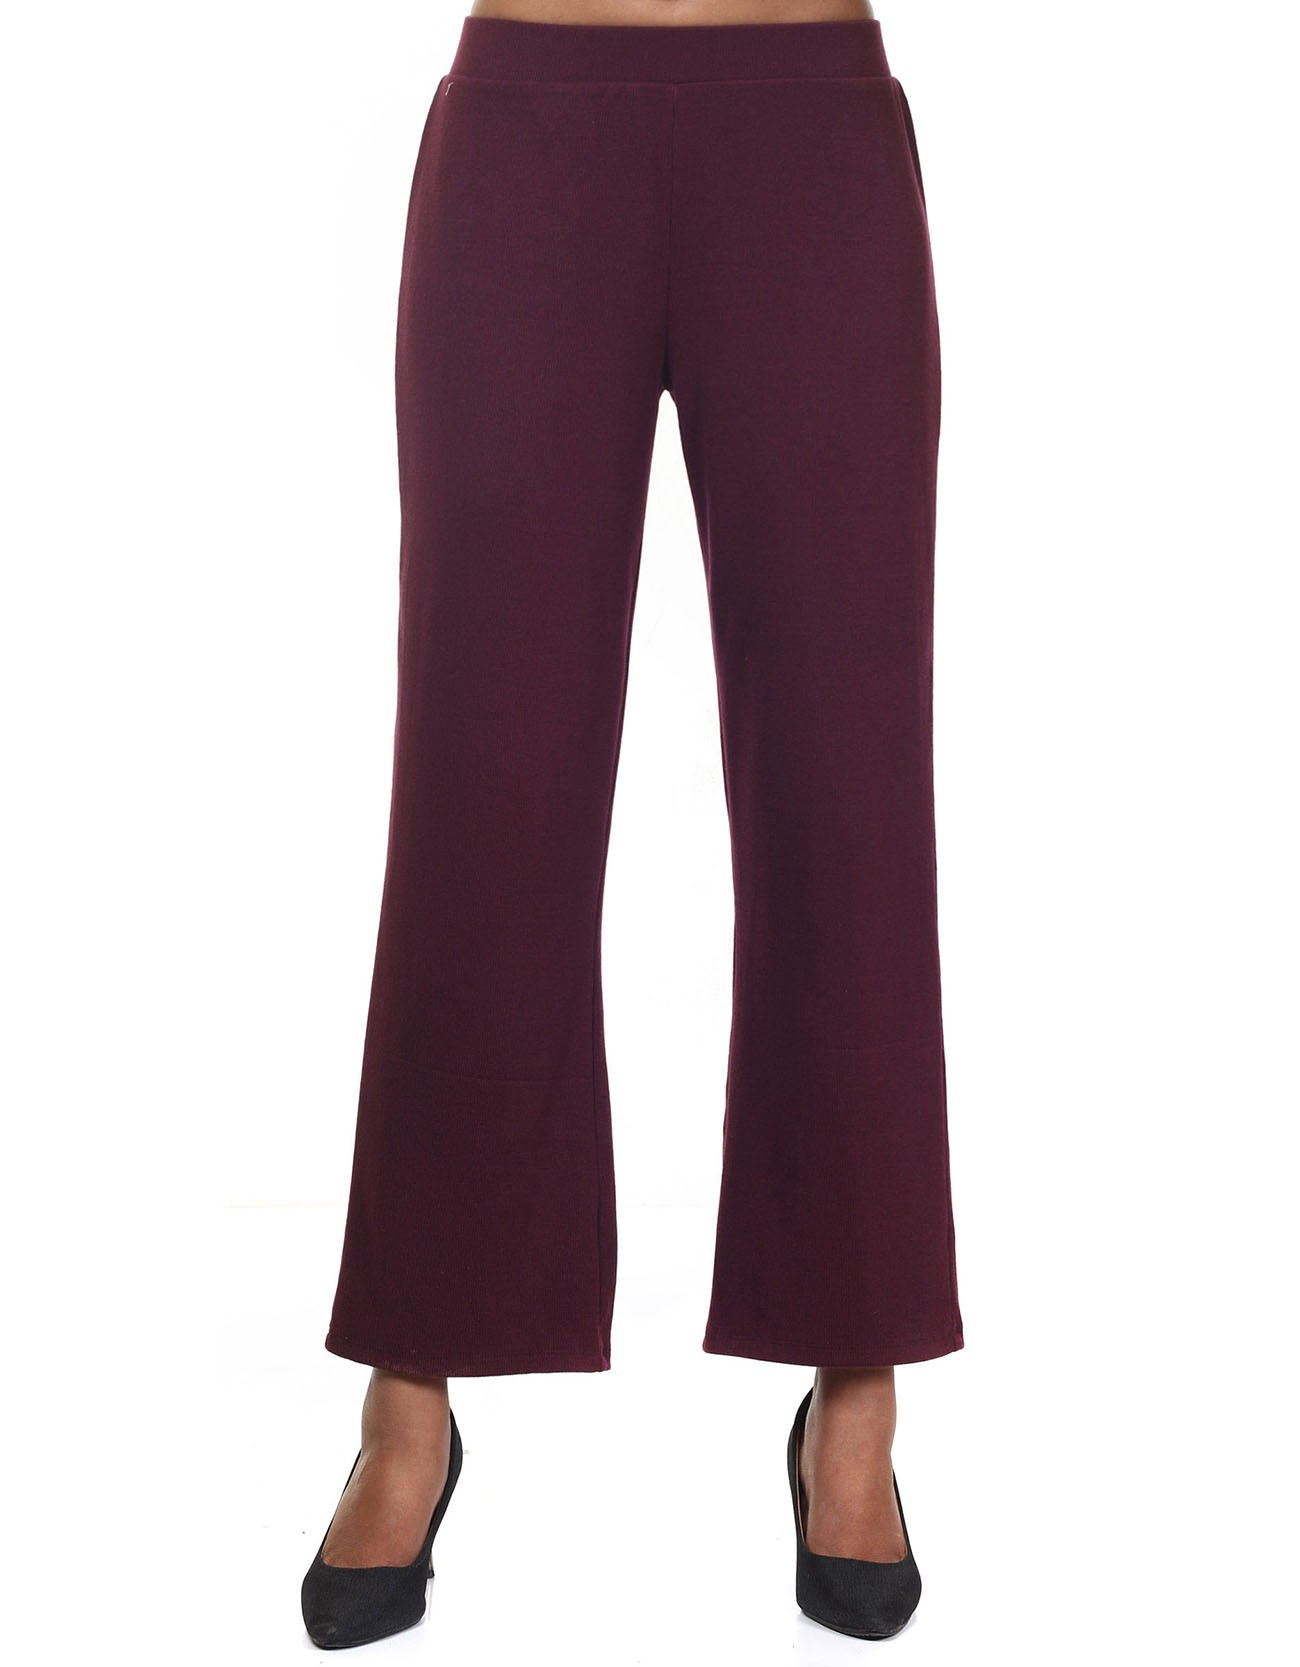 Ribbed Flare-Leg Pants